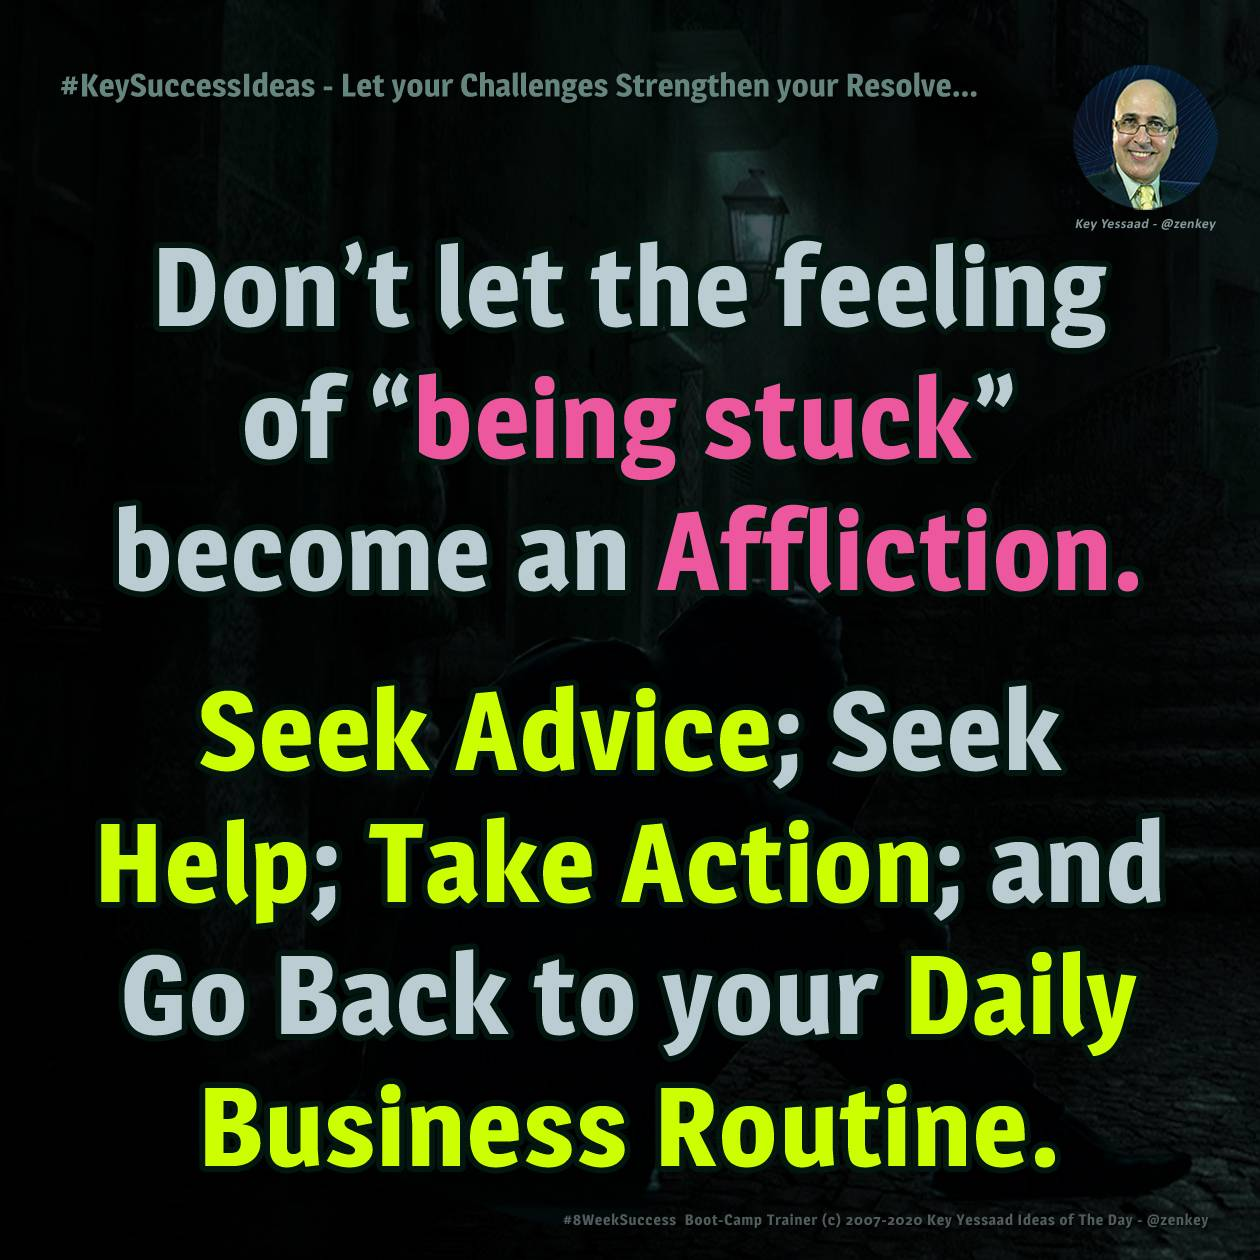 Let your Challenges Strengthen your Resolve... - #KeySuccessIdeas